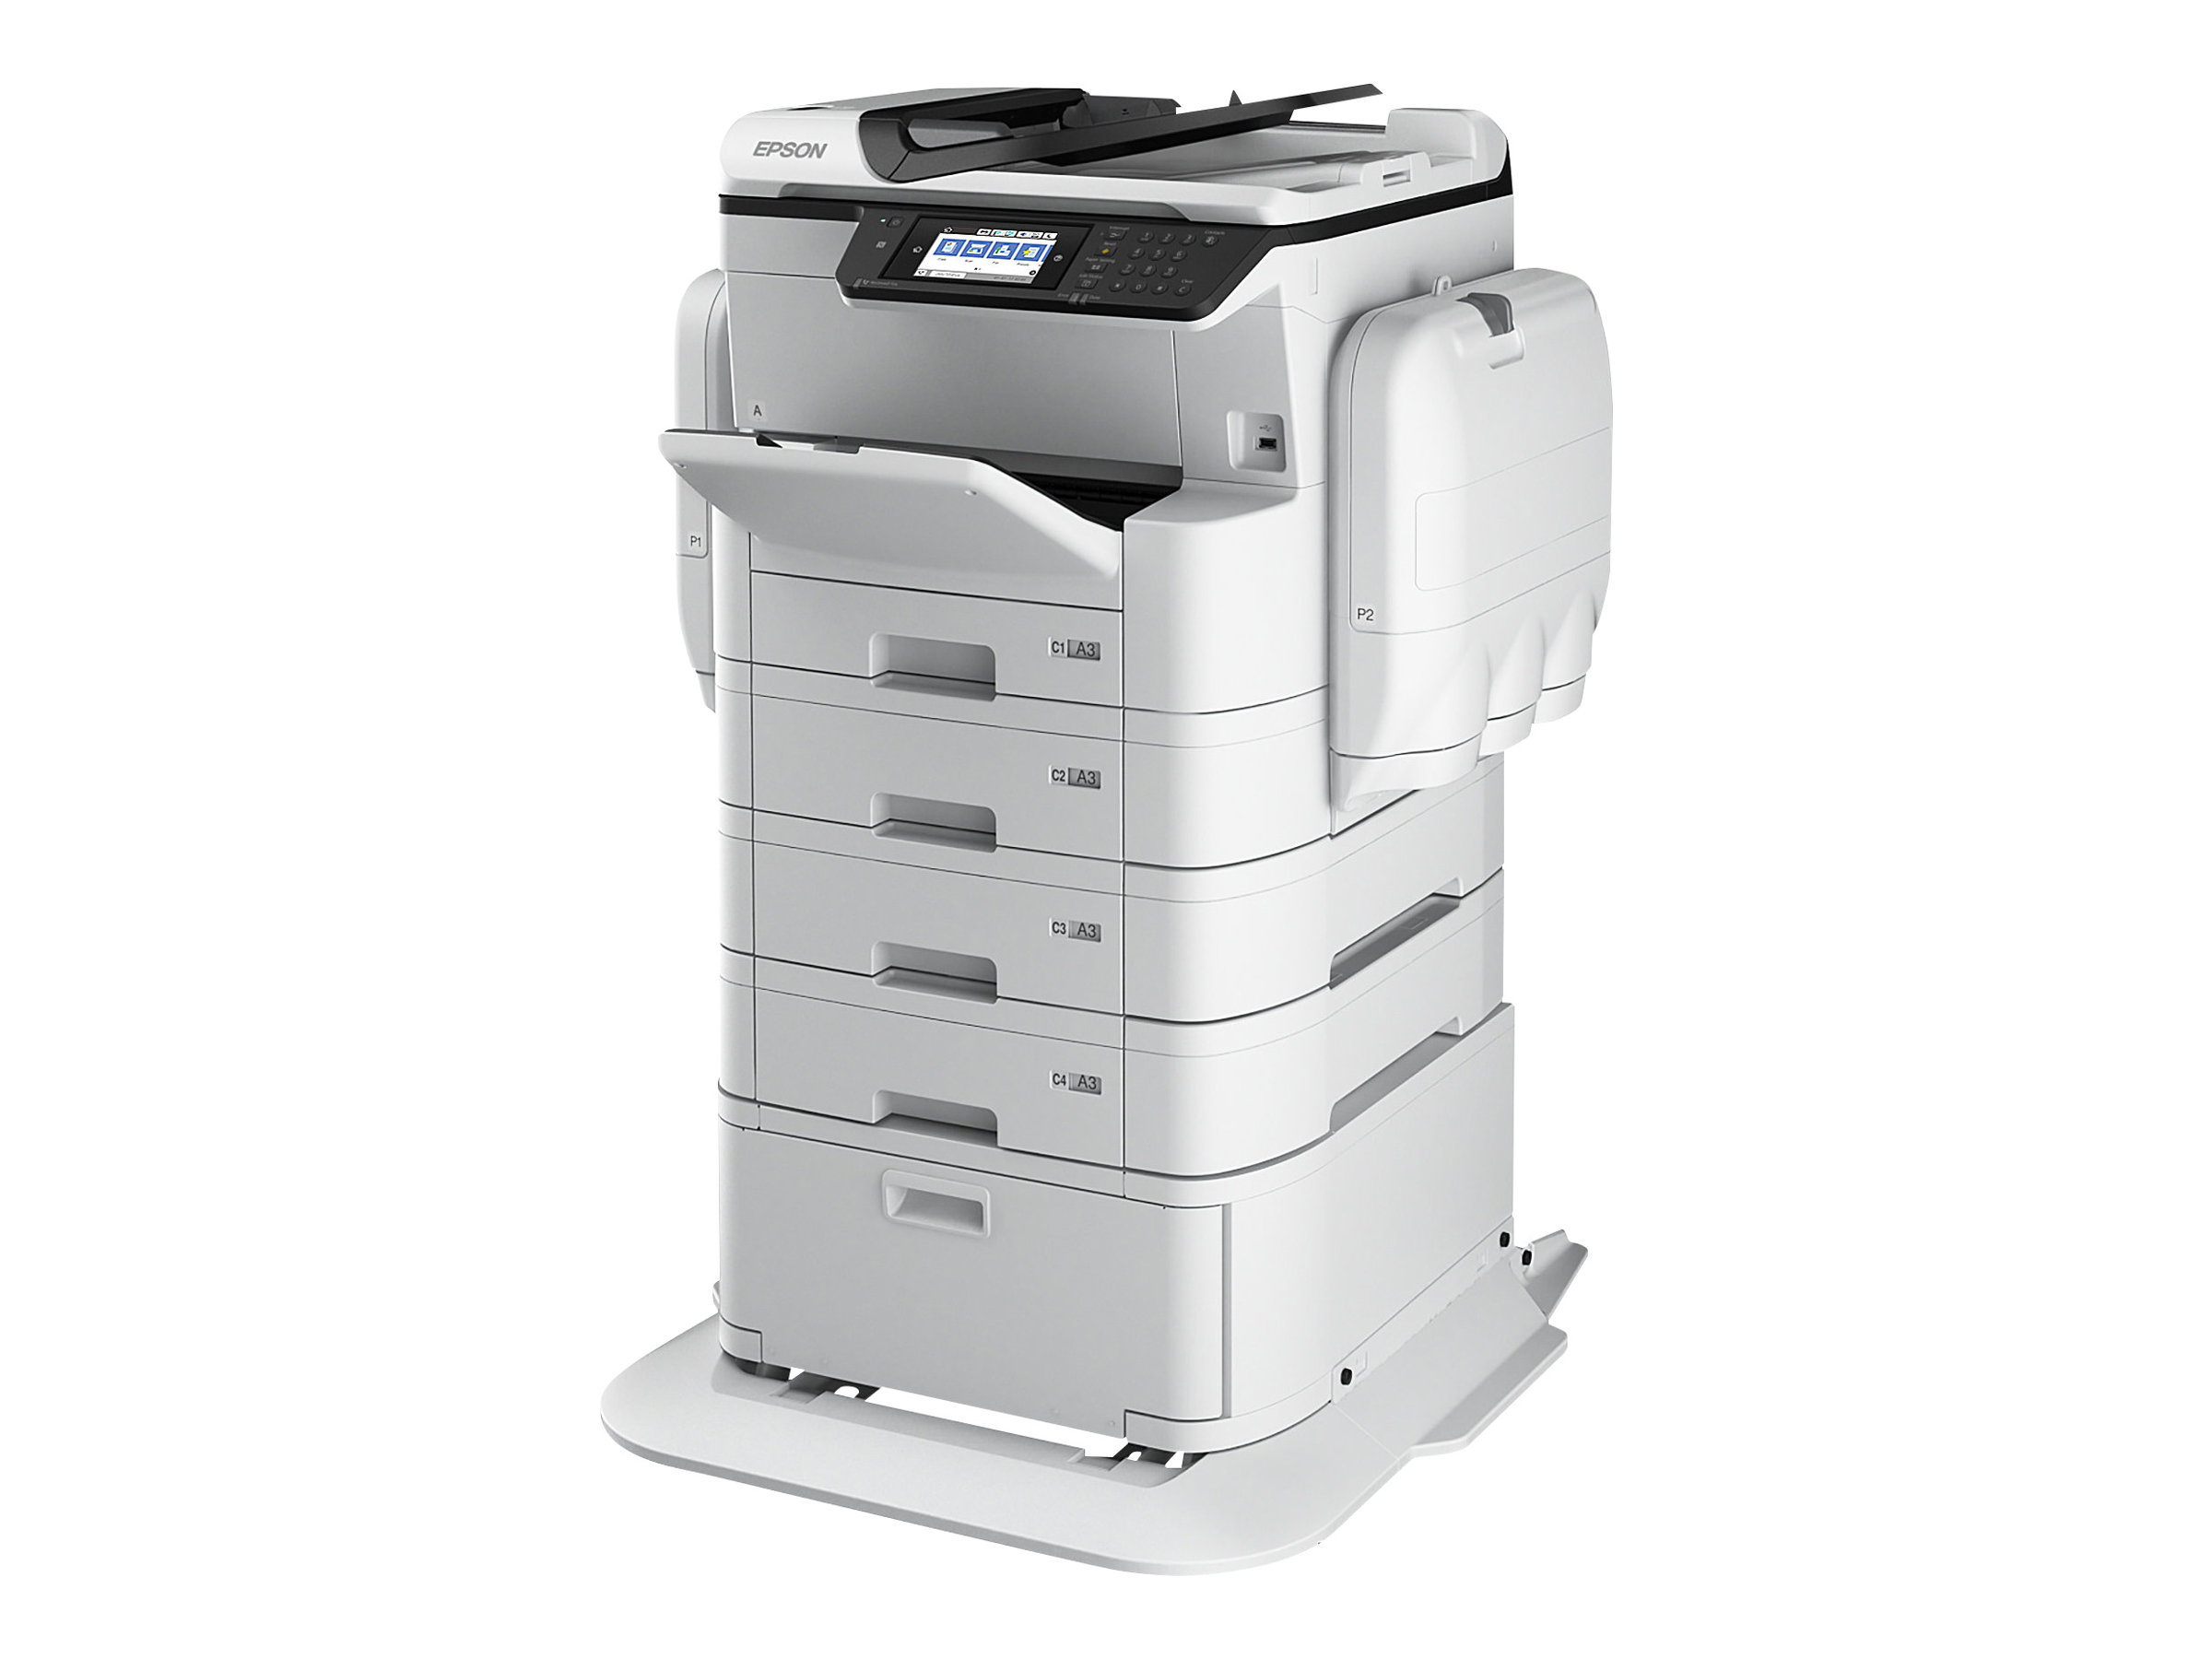 Epson WorkForce Pro WF-C869RD3TWFC - Multifunktionsdrucker - Farbe - Tintenstrahl - A3 (297 x 420 mm)